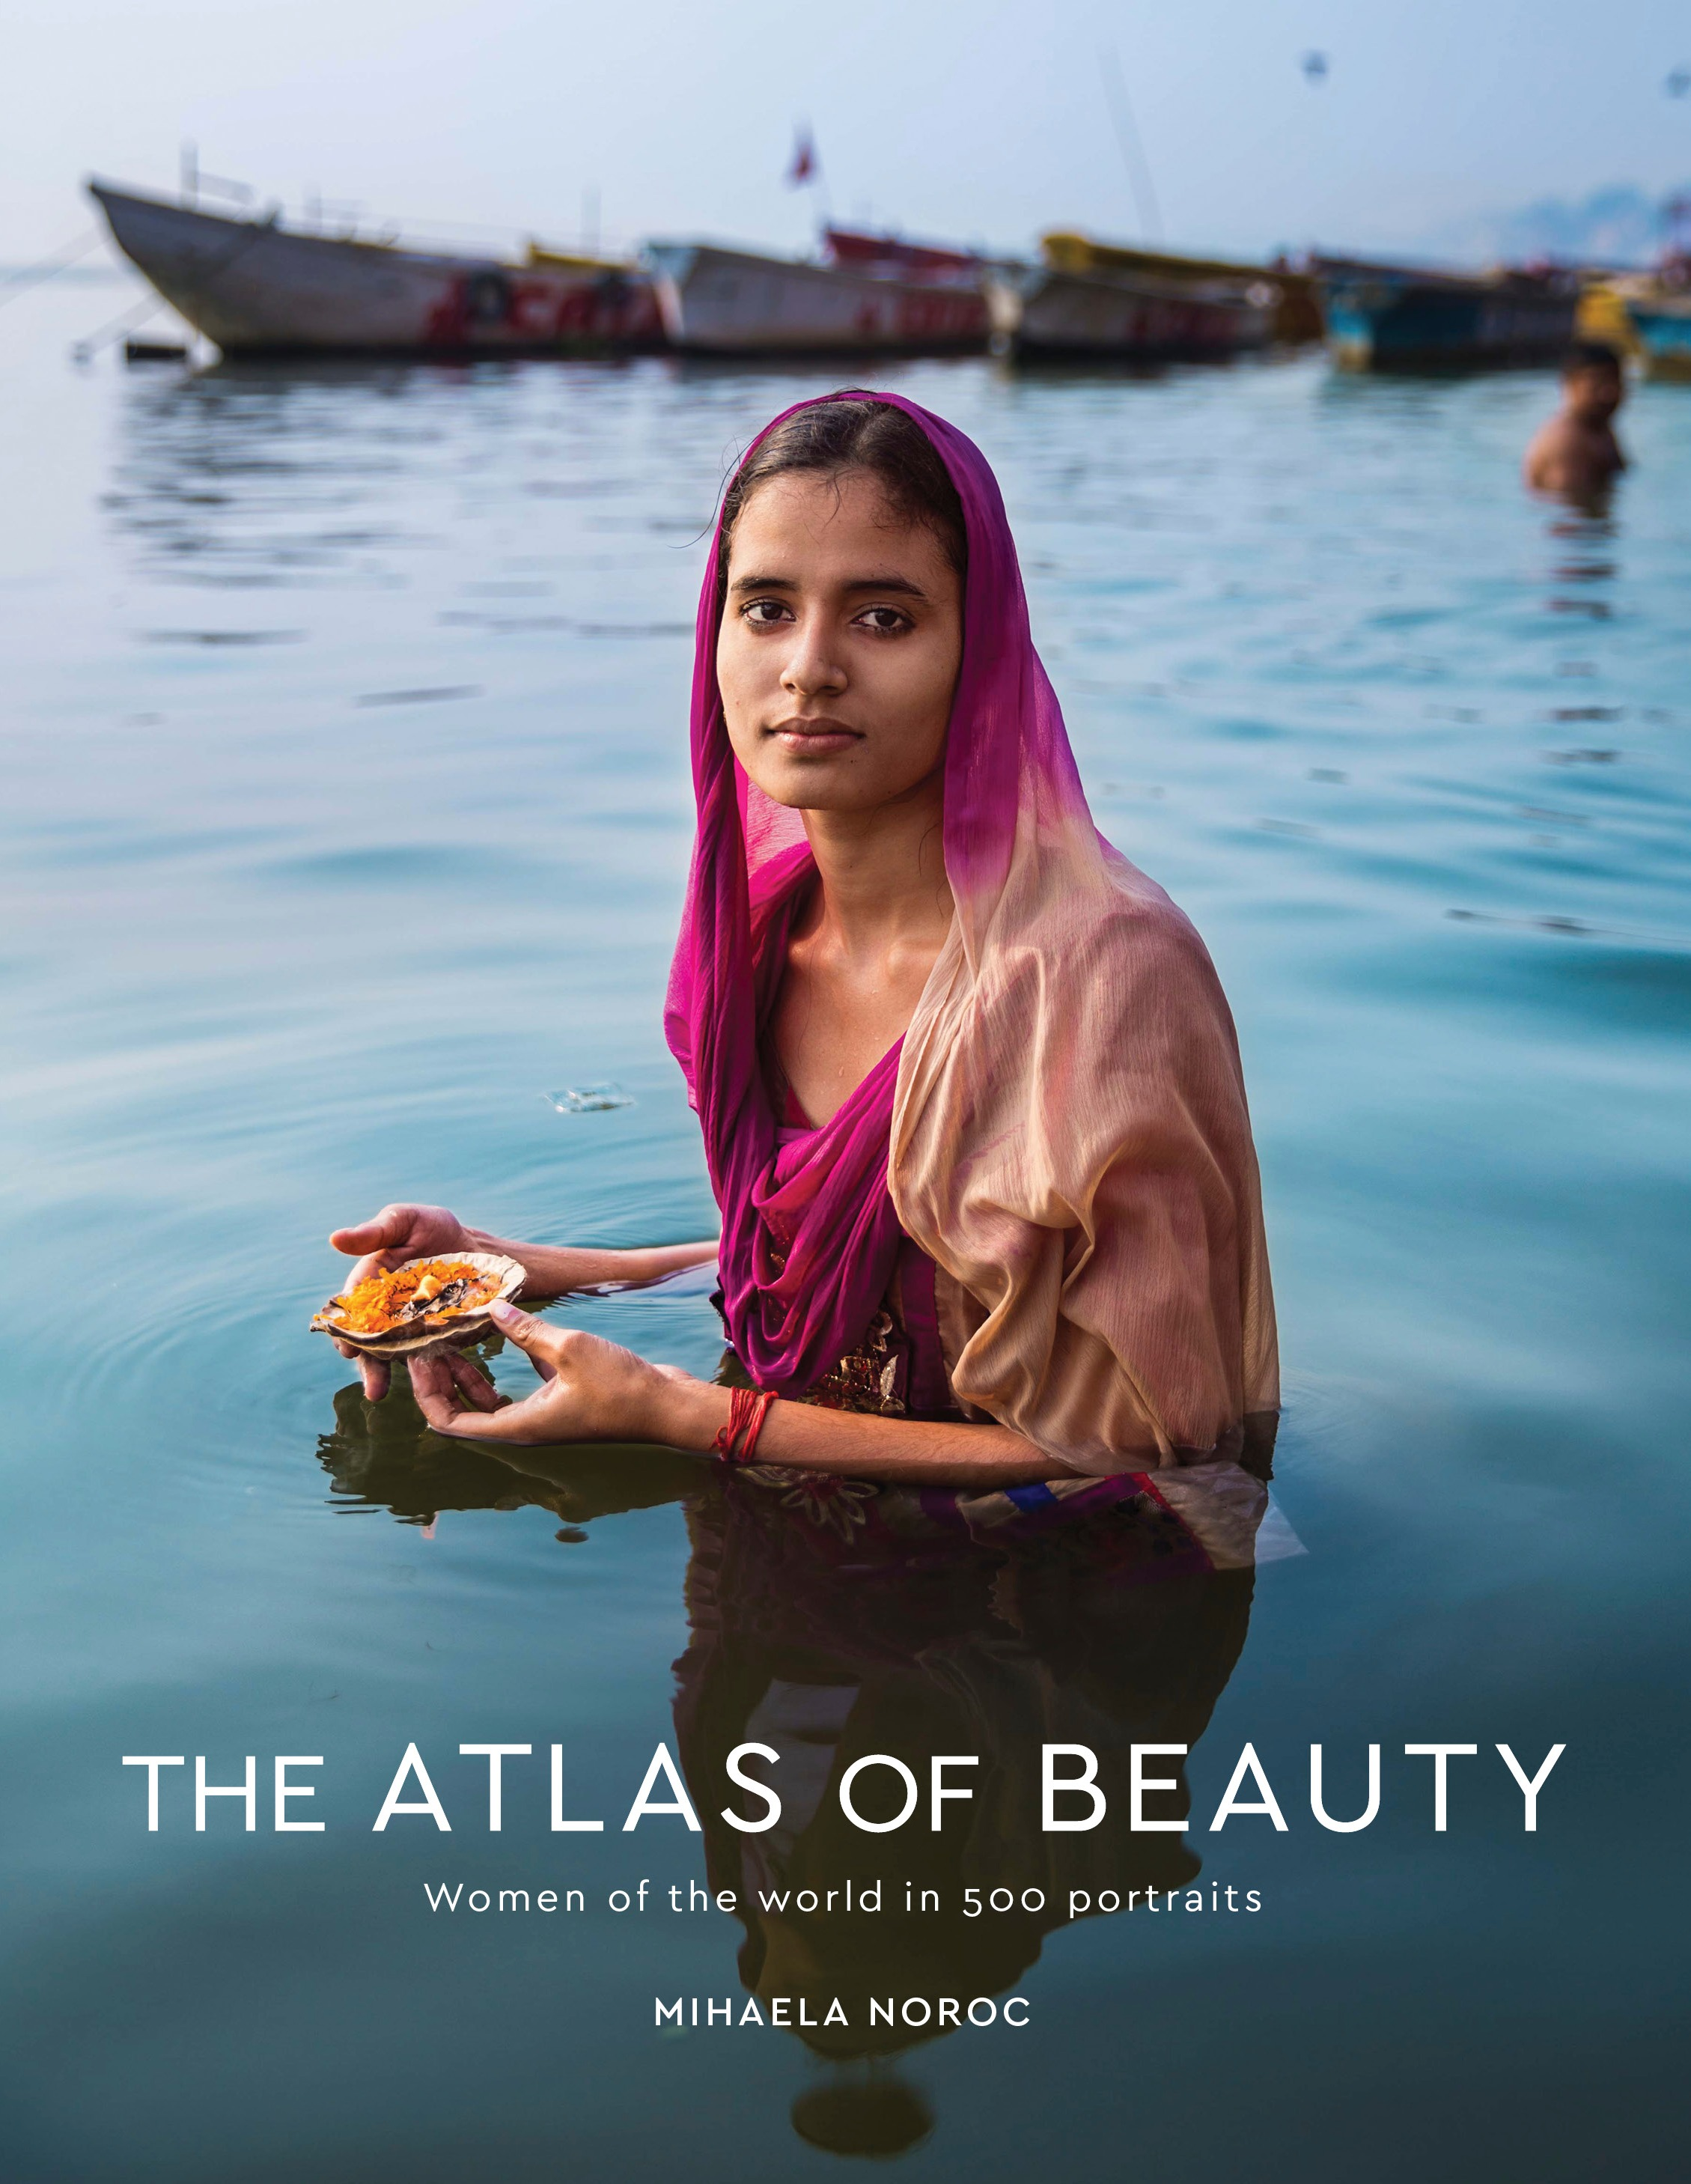 Brooklyn Book Launch: The Atlas of Beauty: Women of the World in 500 Portraits by Mihaela Noroc